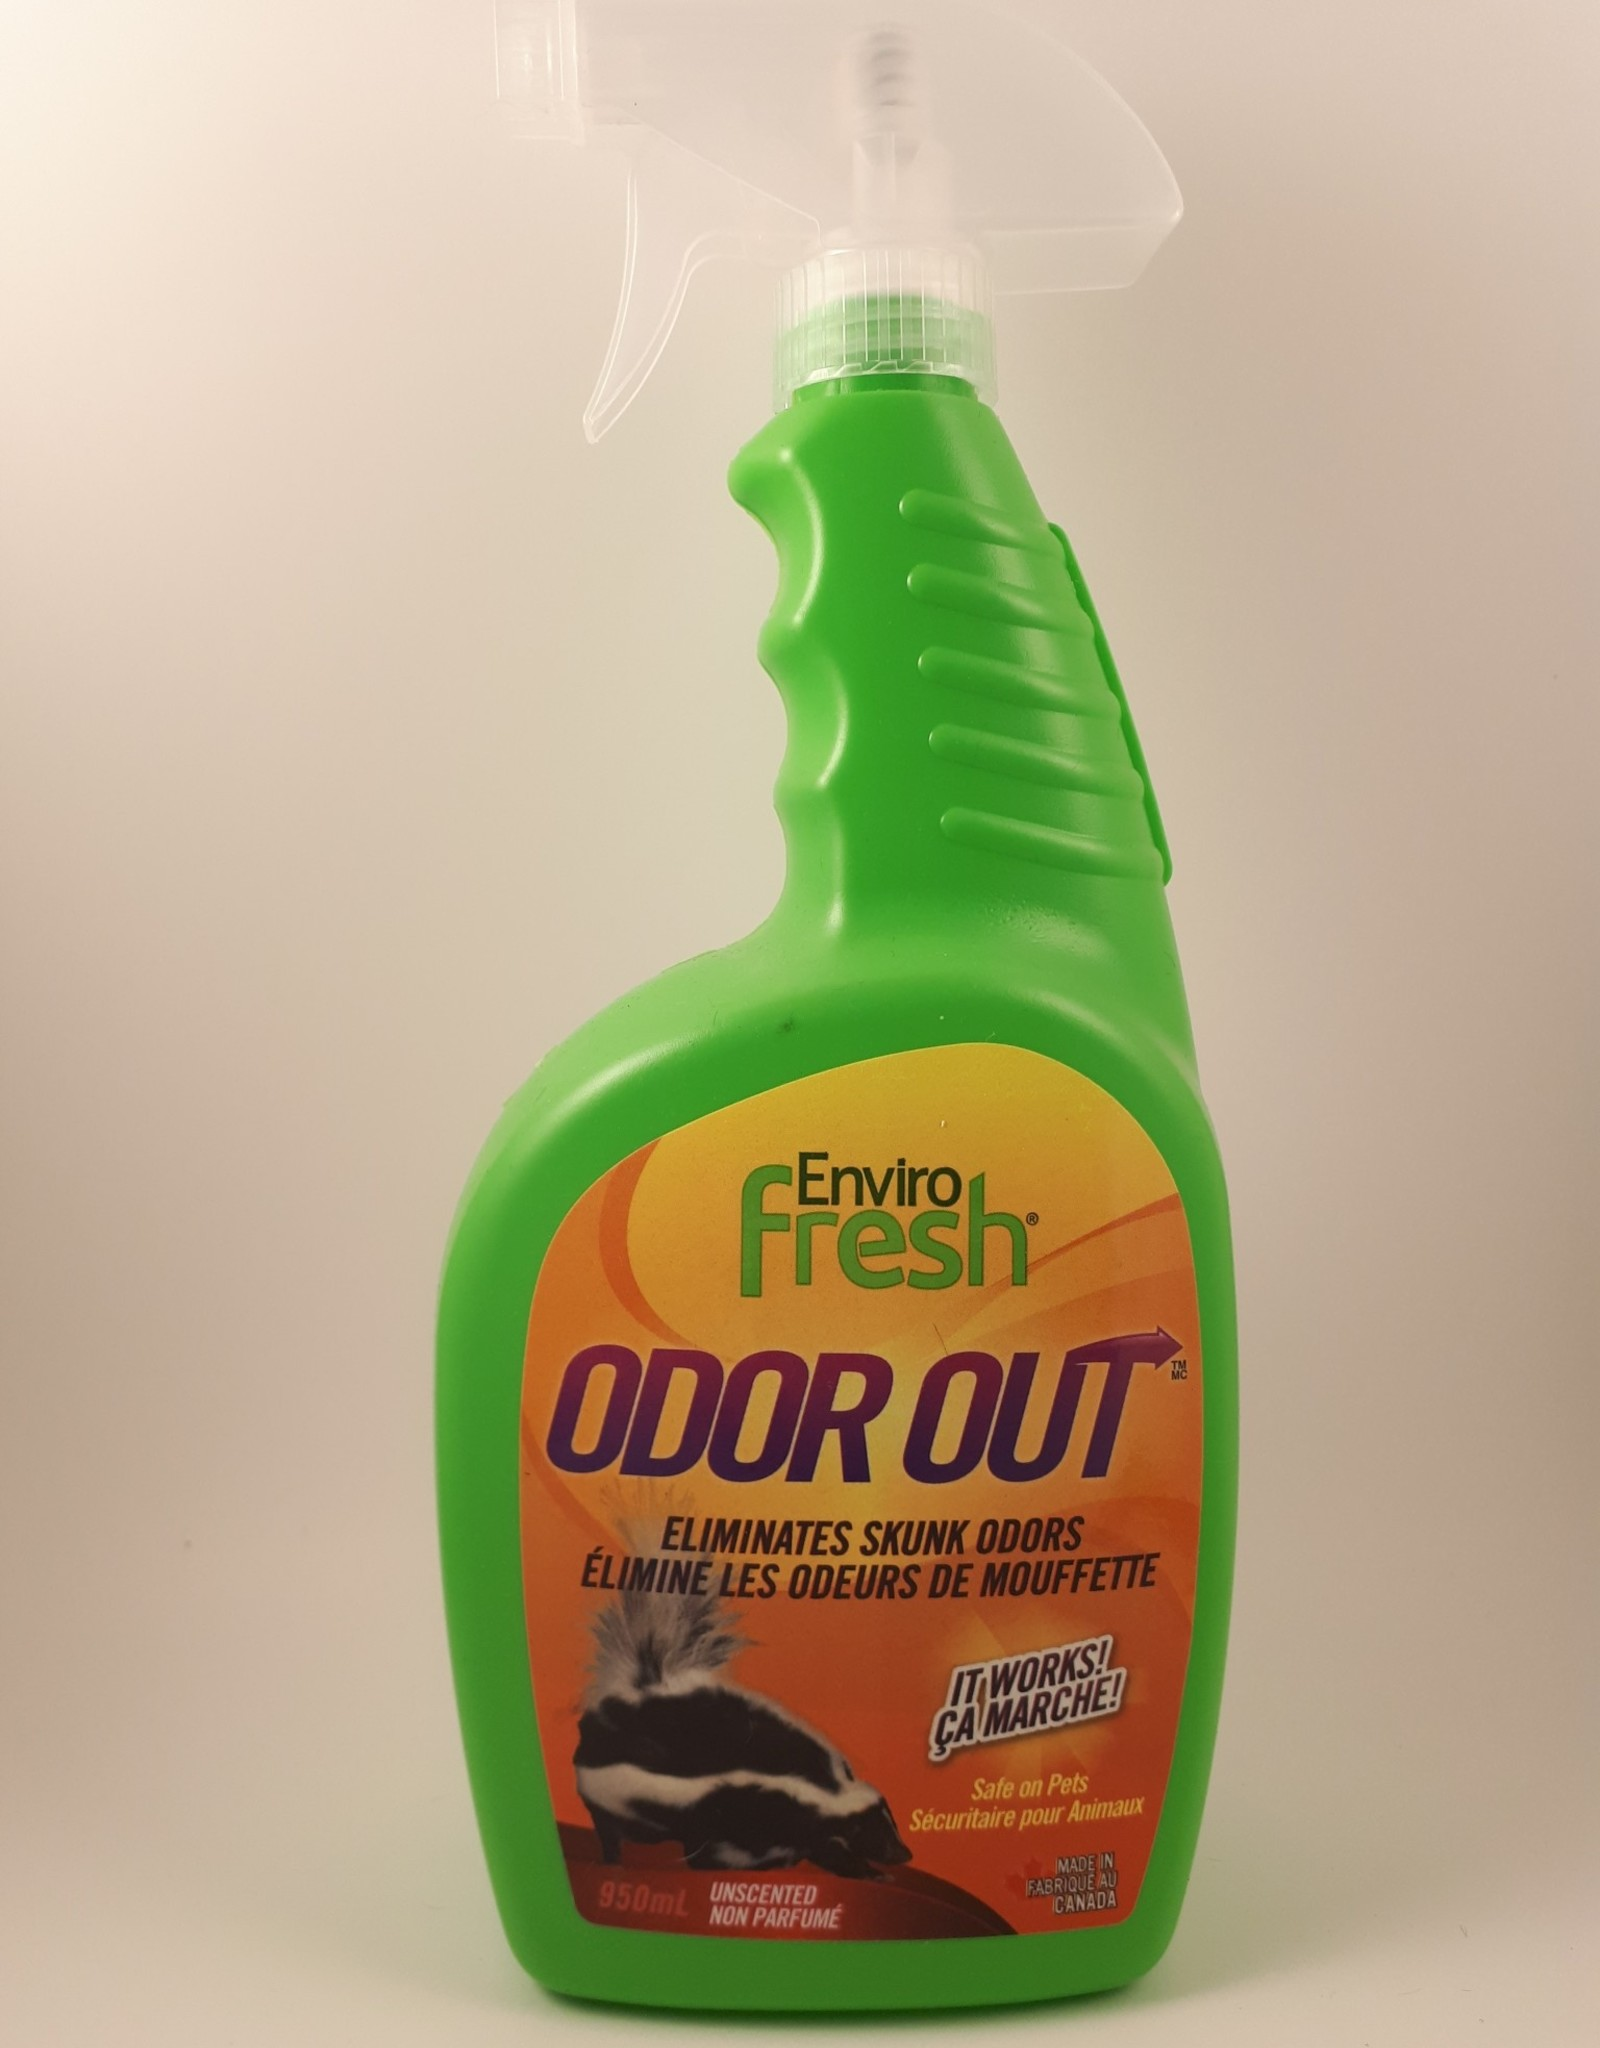 EnviroFresh Enviro Fresh Odor Out Skunk